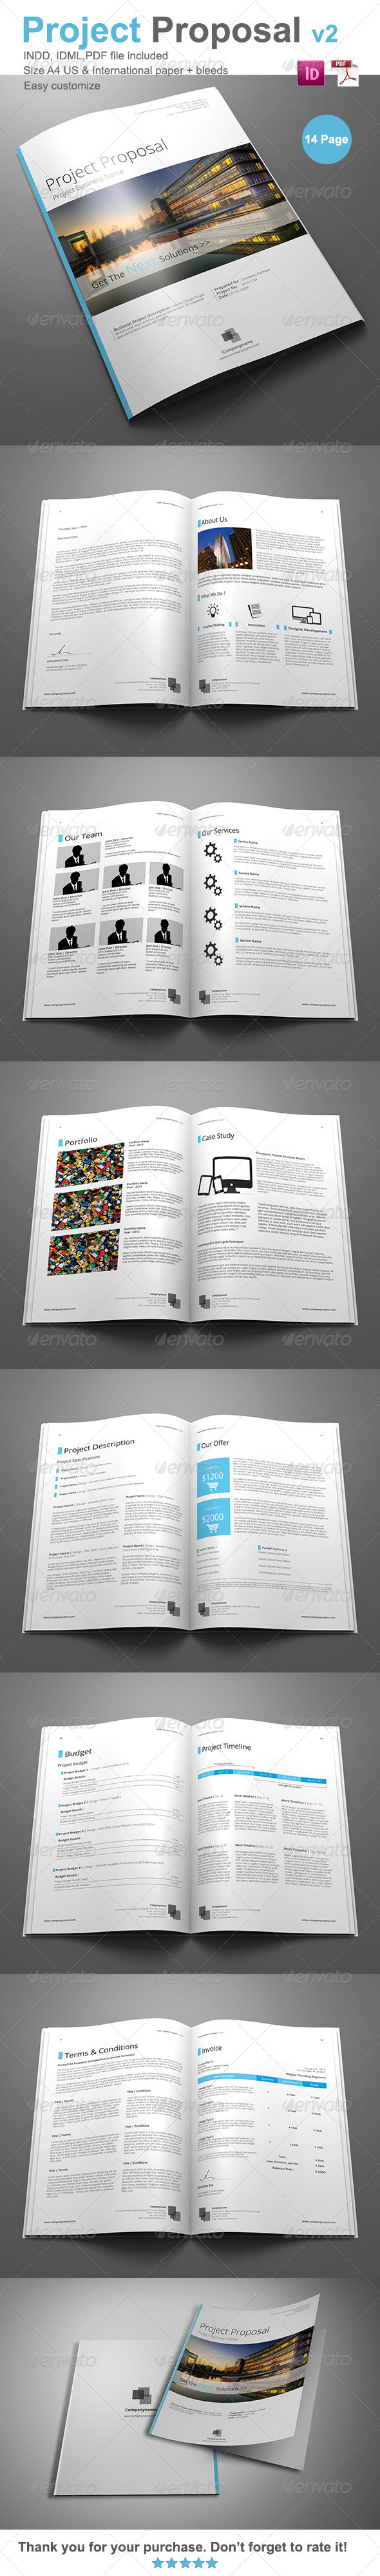 Gstudio Project Proposal Template V2 - Proposals & Invoices Stationery